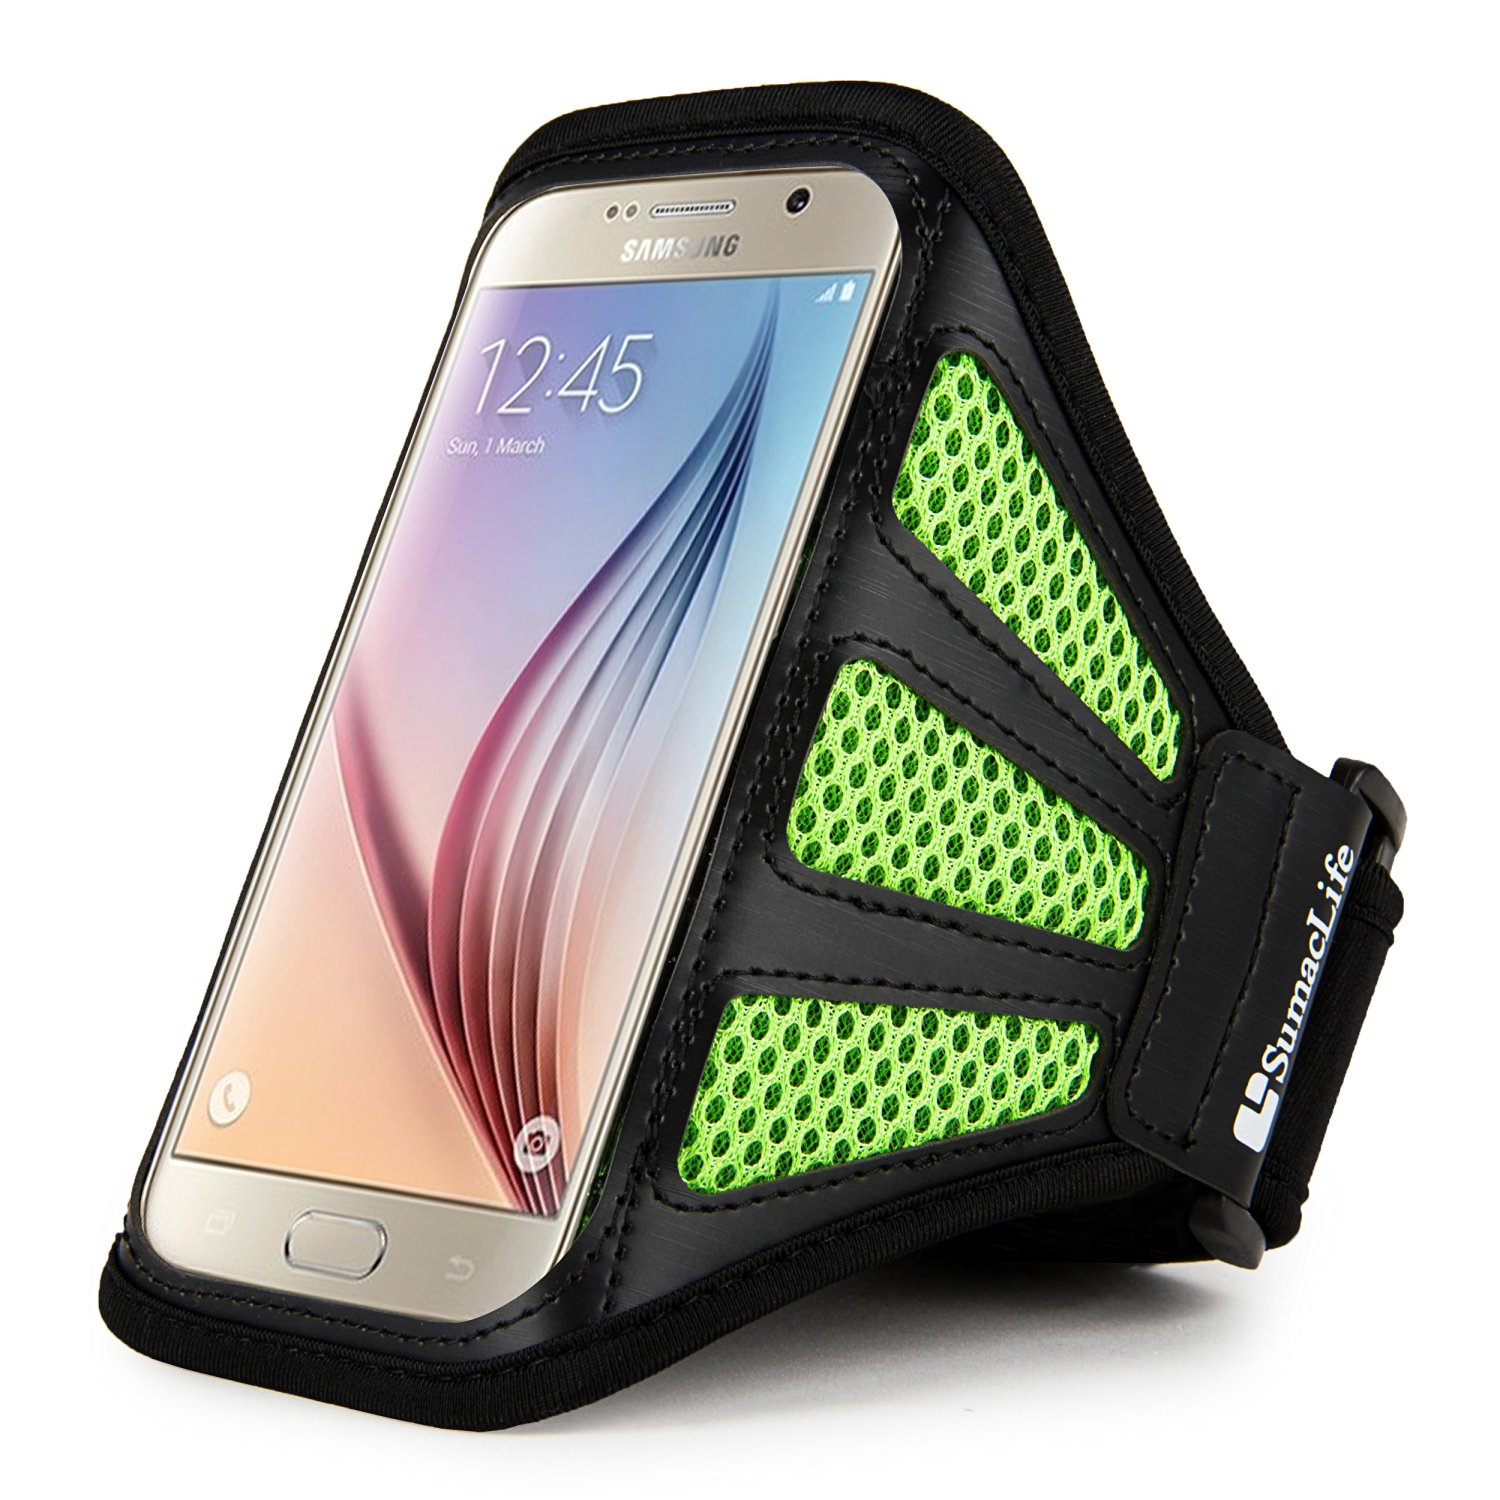 Sumaclife Fashion Mesh Sports Series Cellphone Armband Armlet for Samsung Galaxy J5 (2016) / Amp Prime / Amp 2 / S7 / S6 Edge / S6 / A5 / E5 (Green/Black)